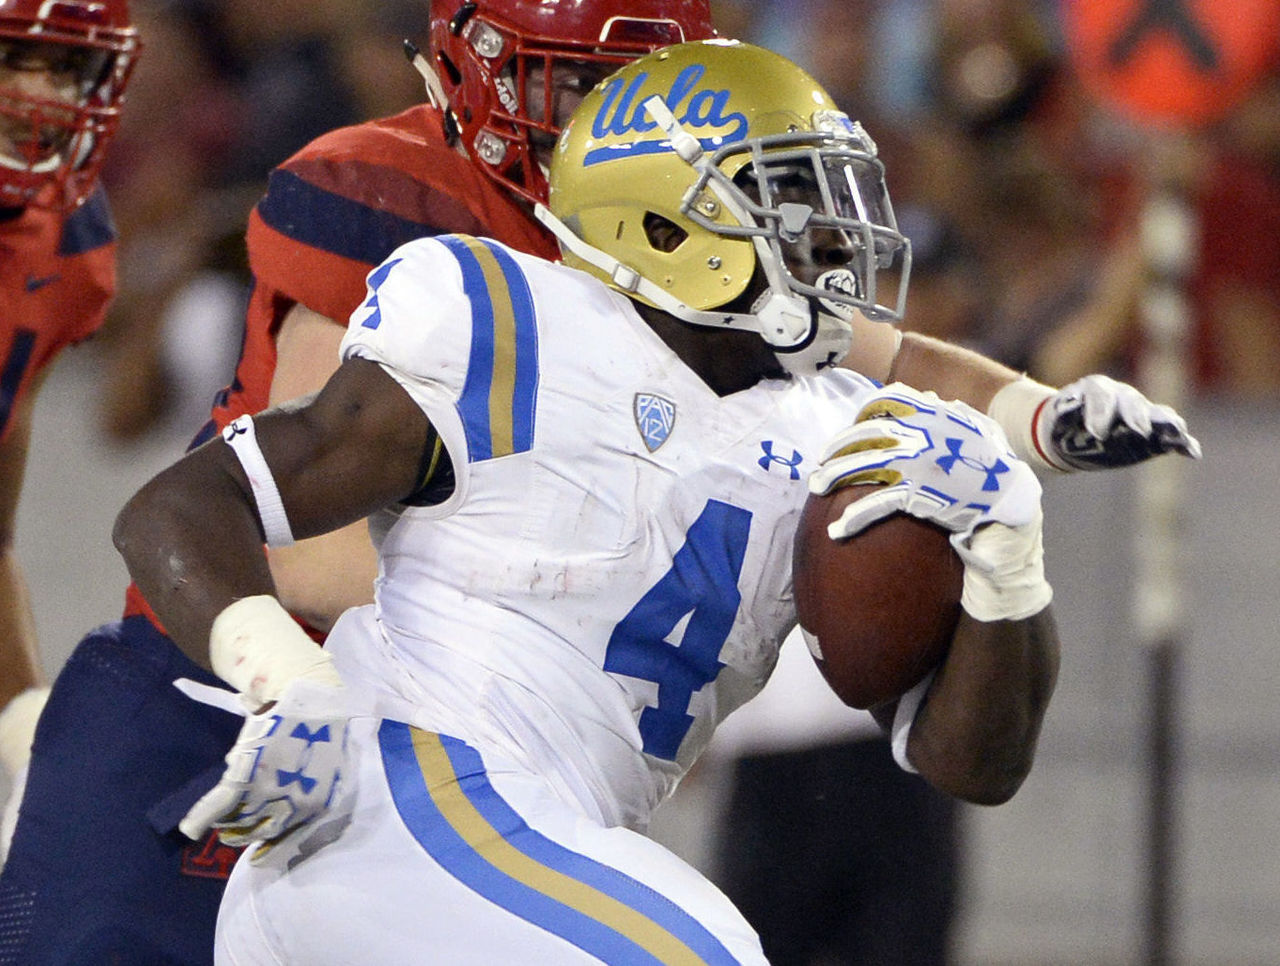 Cropped 2017 10 15t050305z 374054810 nocid rtrmadp 3 ncaa football ucla at arizona